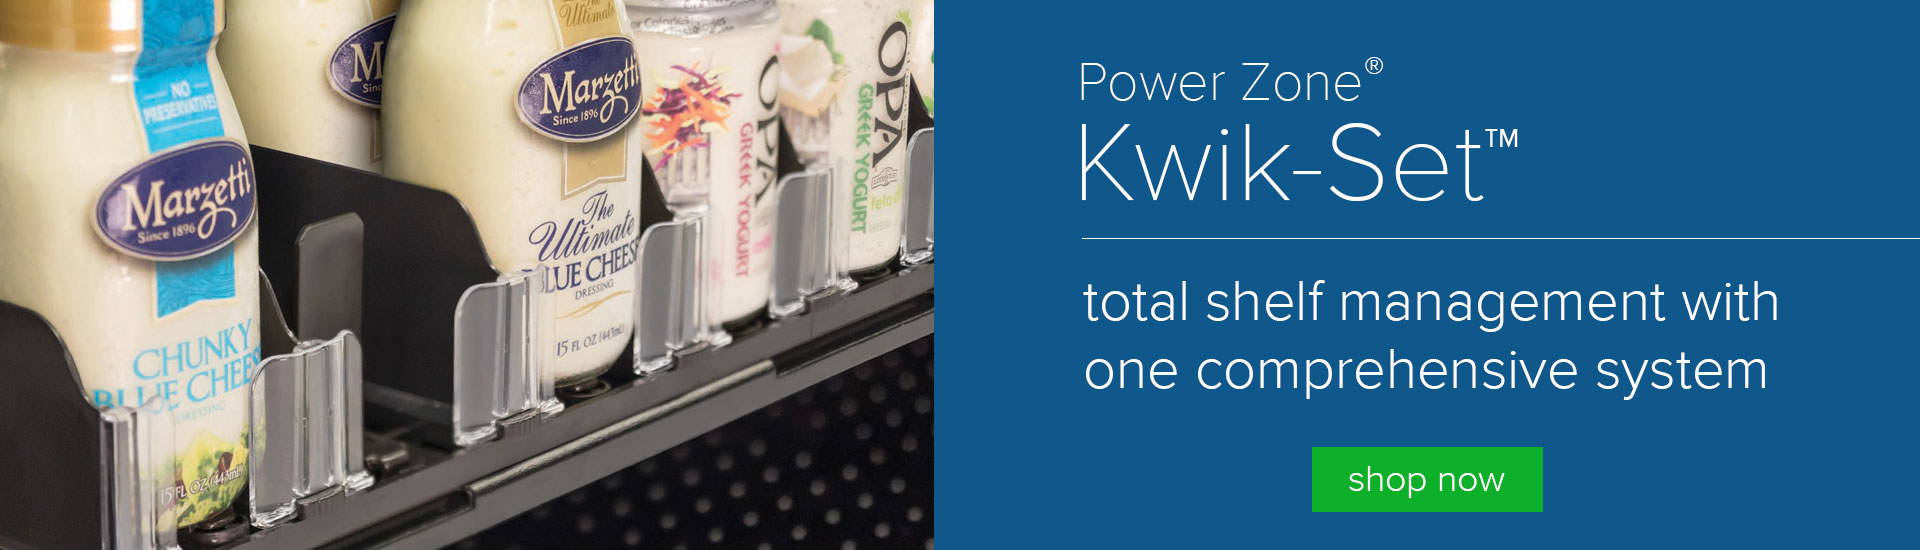 Power Zone Kwik-Set